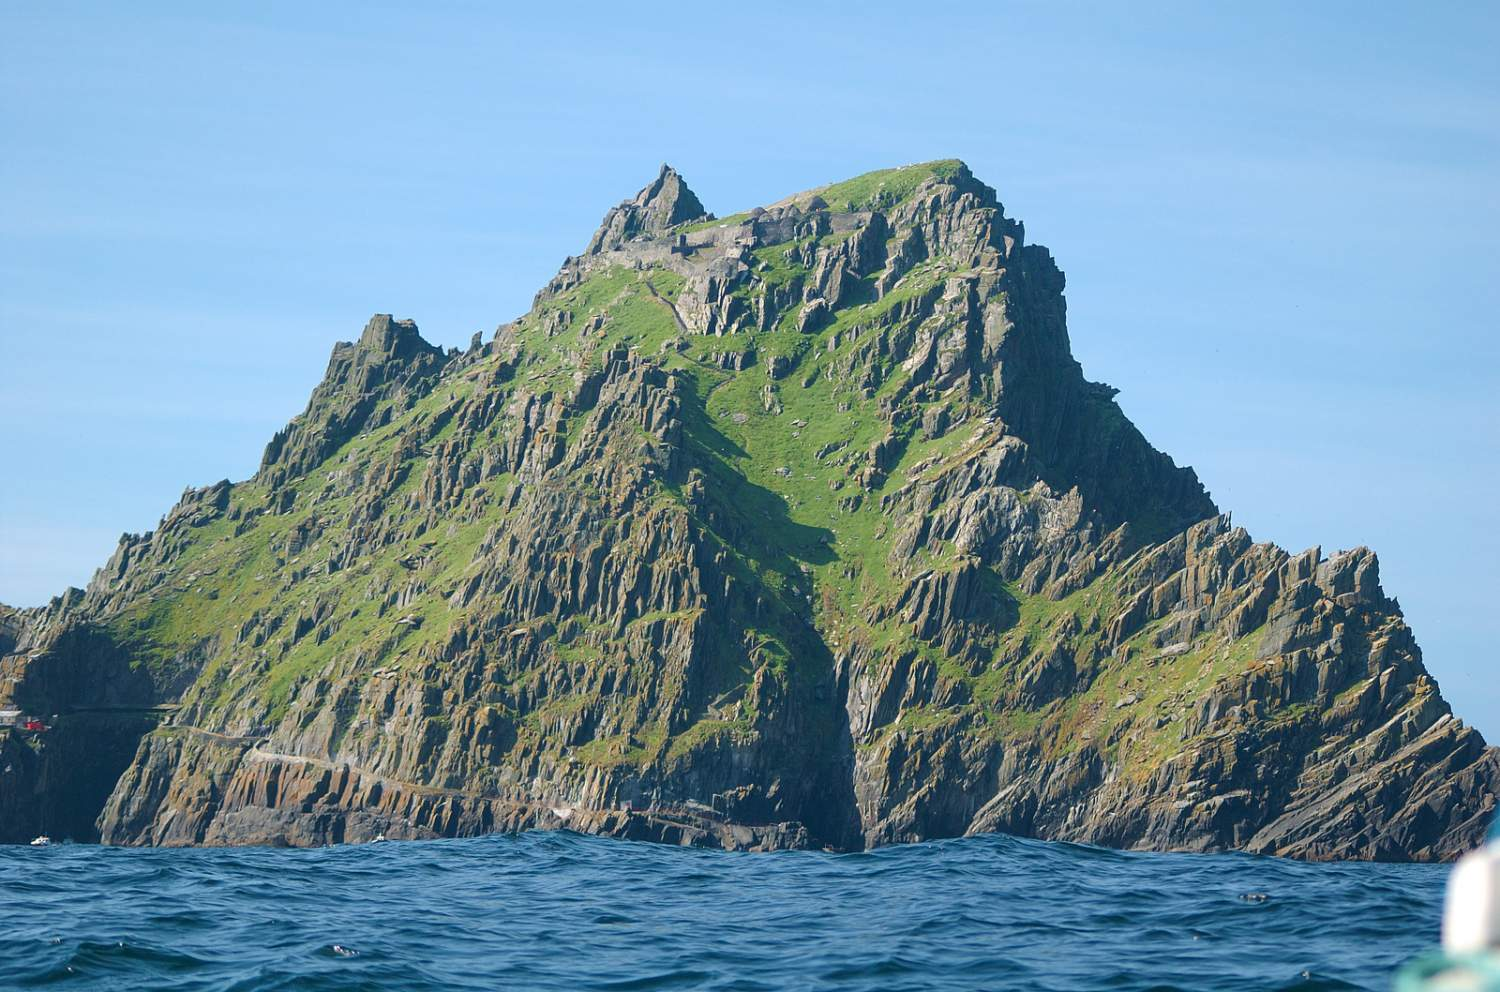 The Skellig Michael island seen from the ocean, Ireland